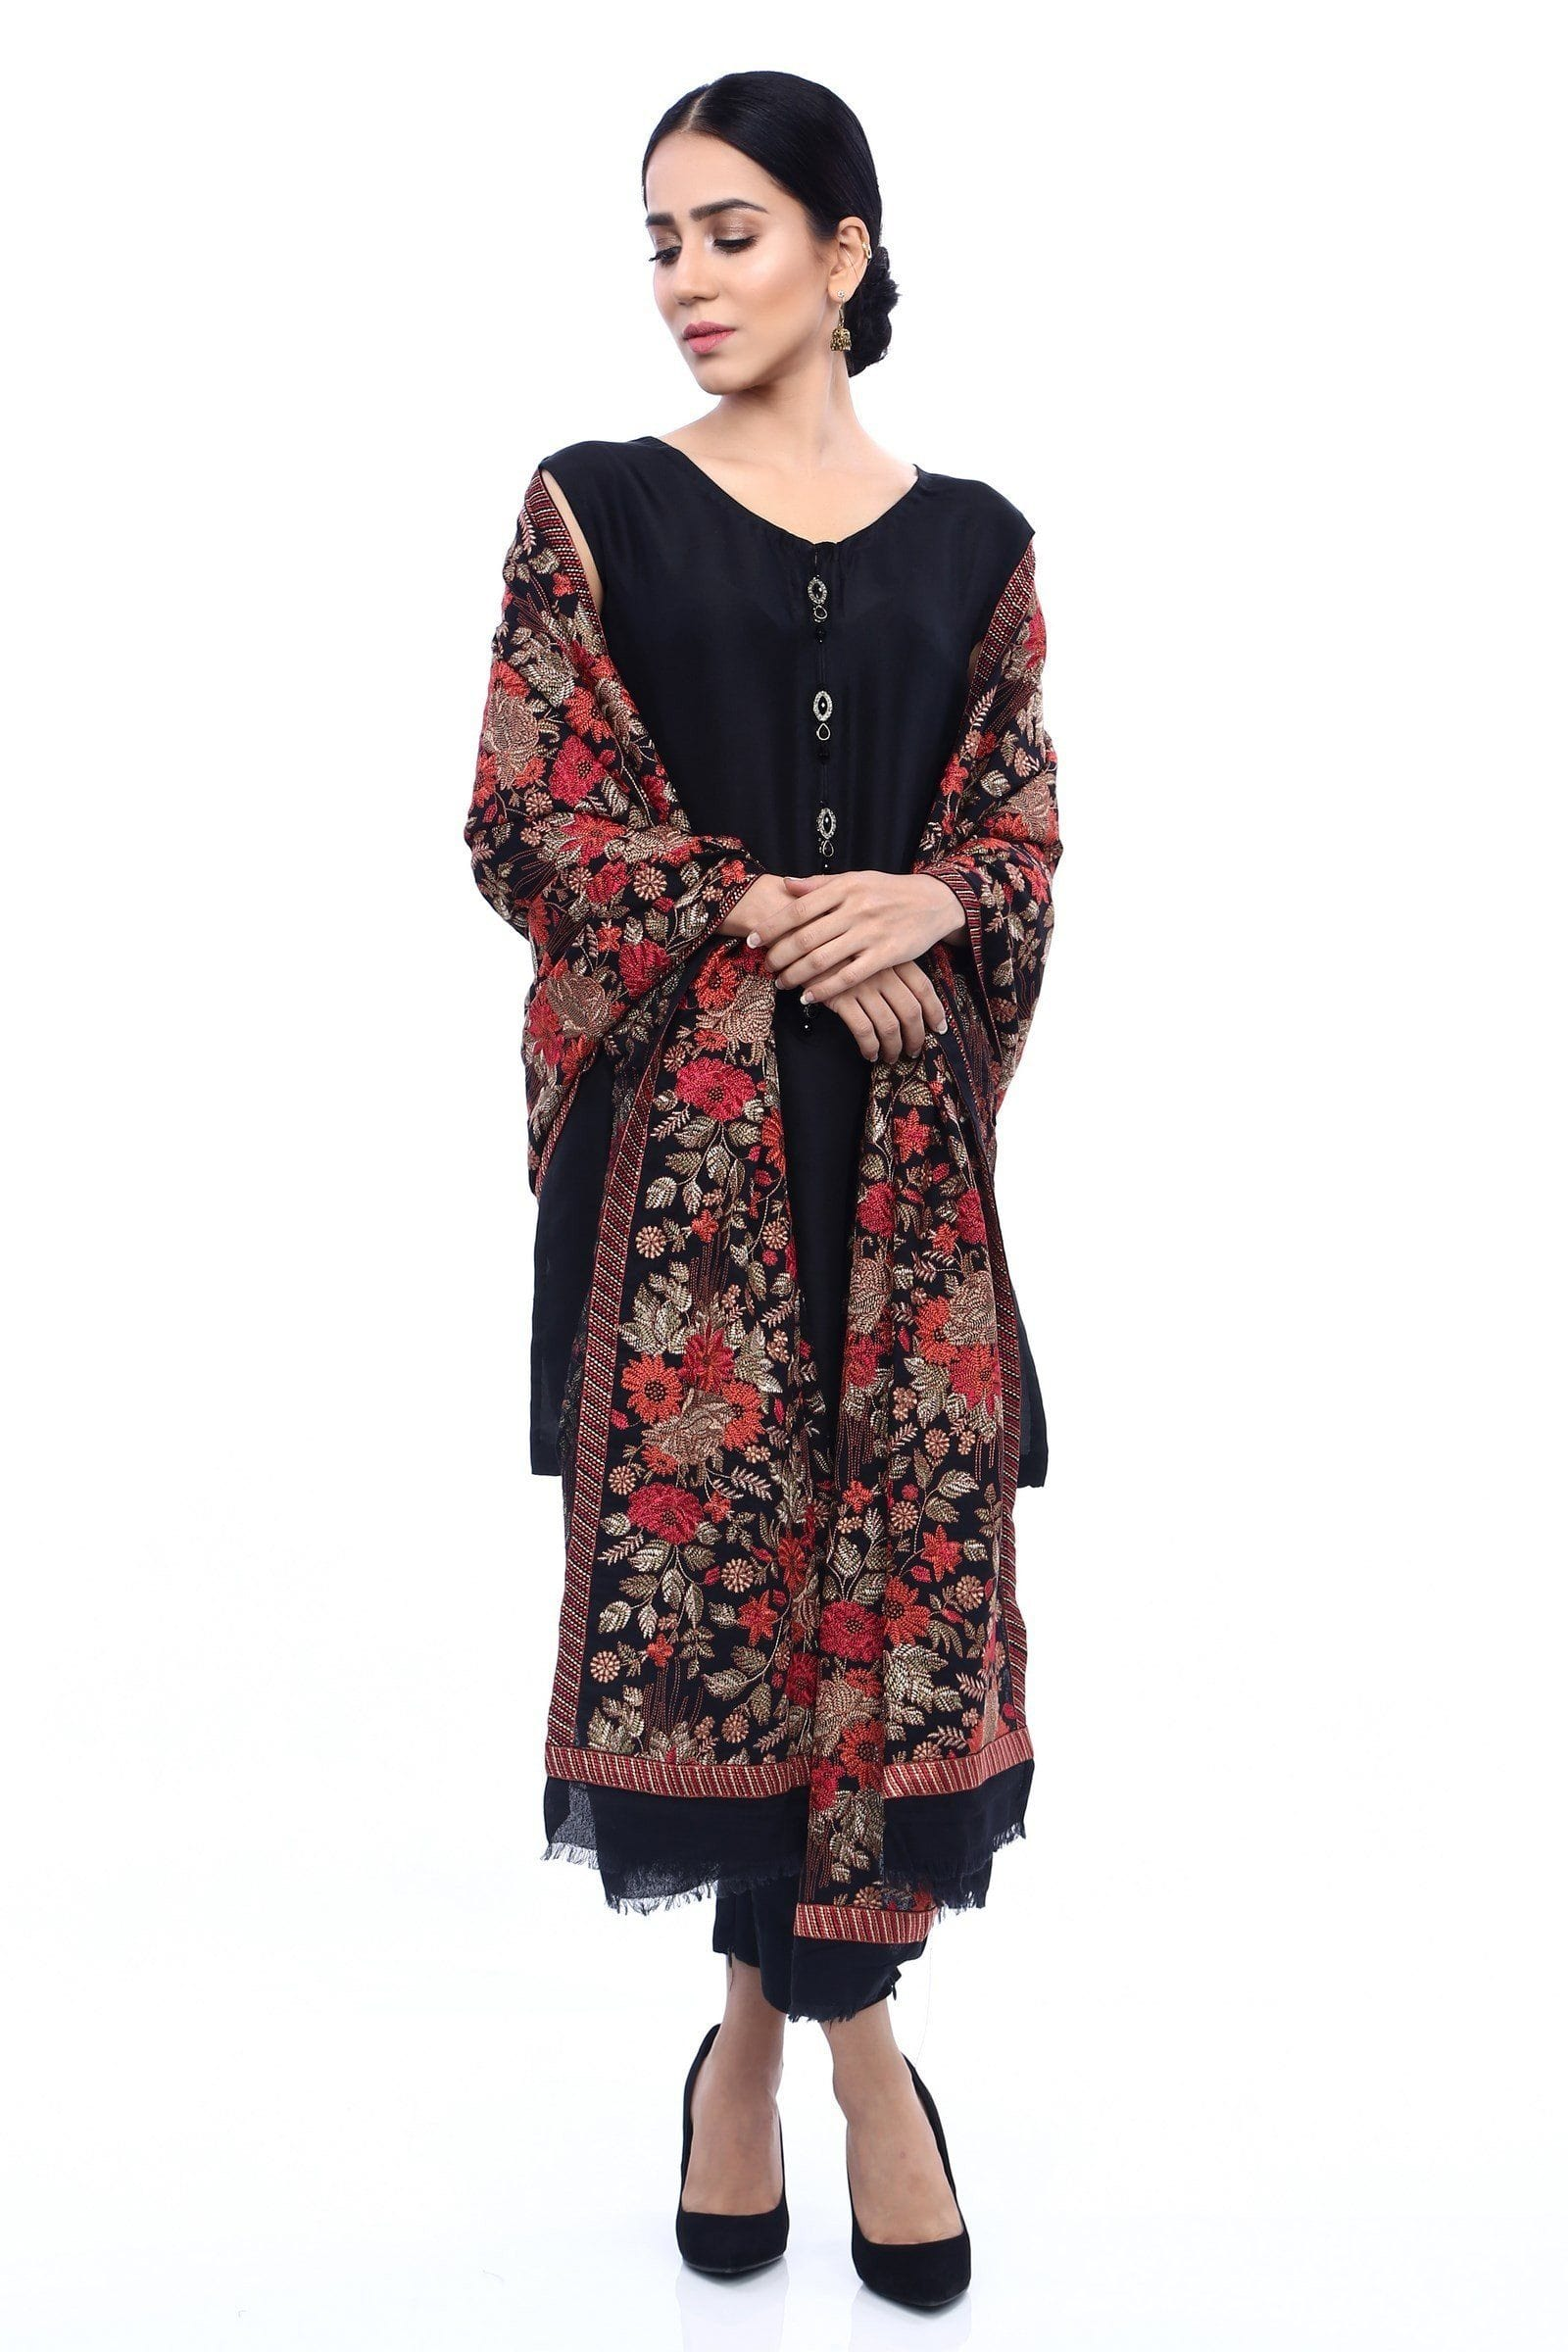 Grace 11 - Formal Heavy Embroidered Karandi Lawn shawl